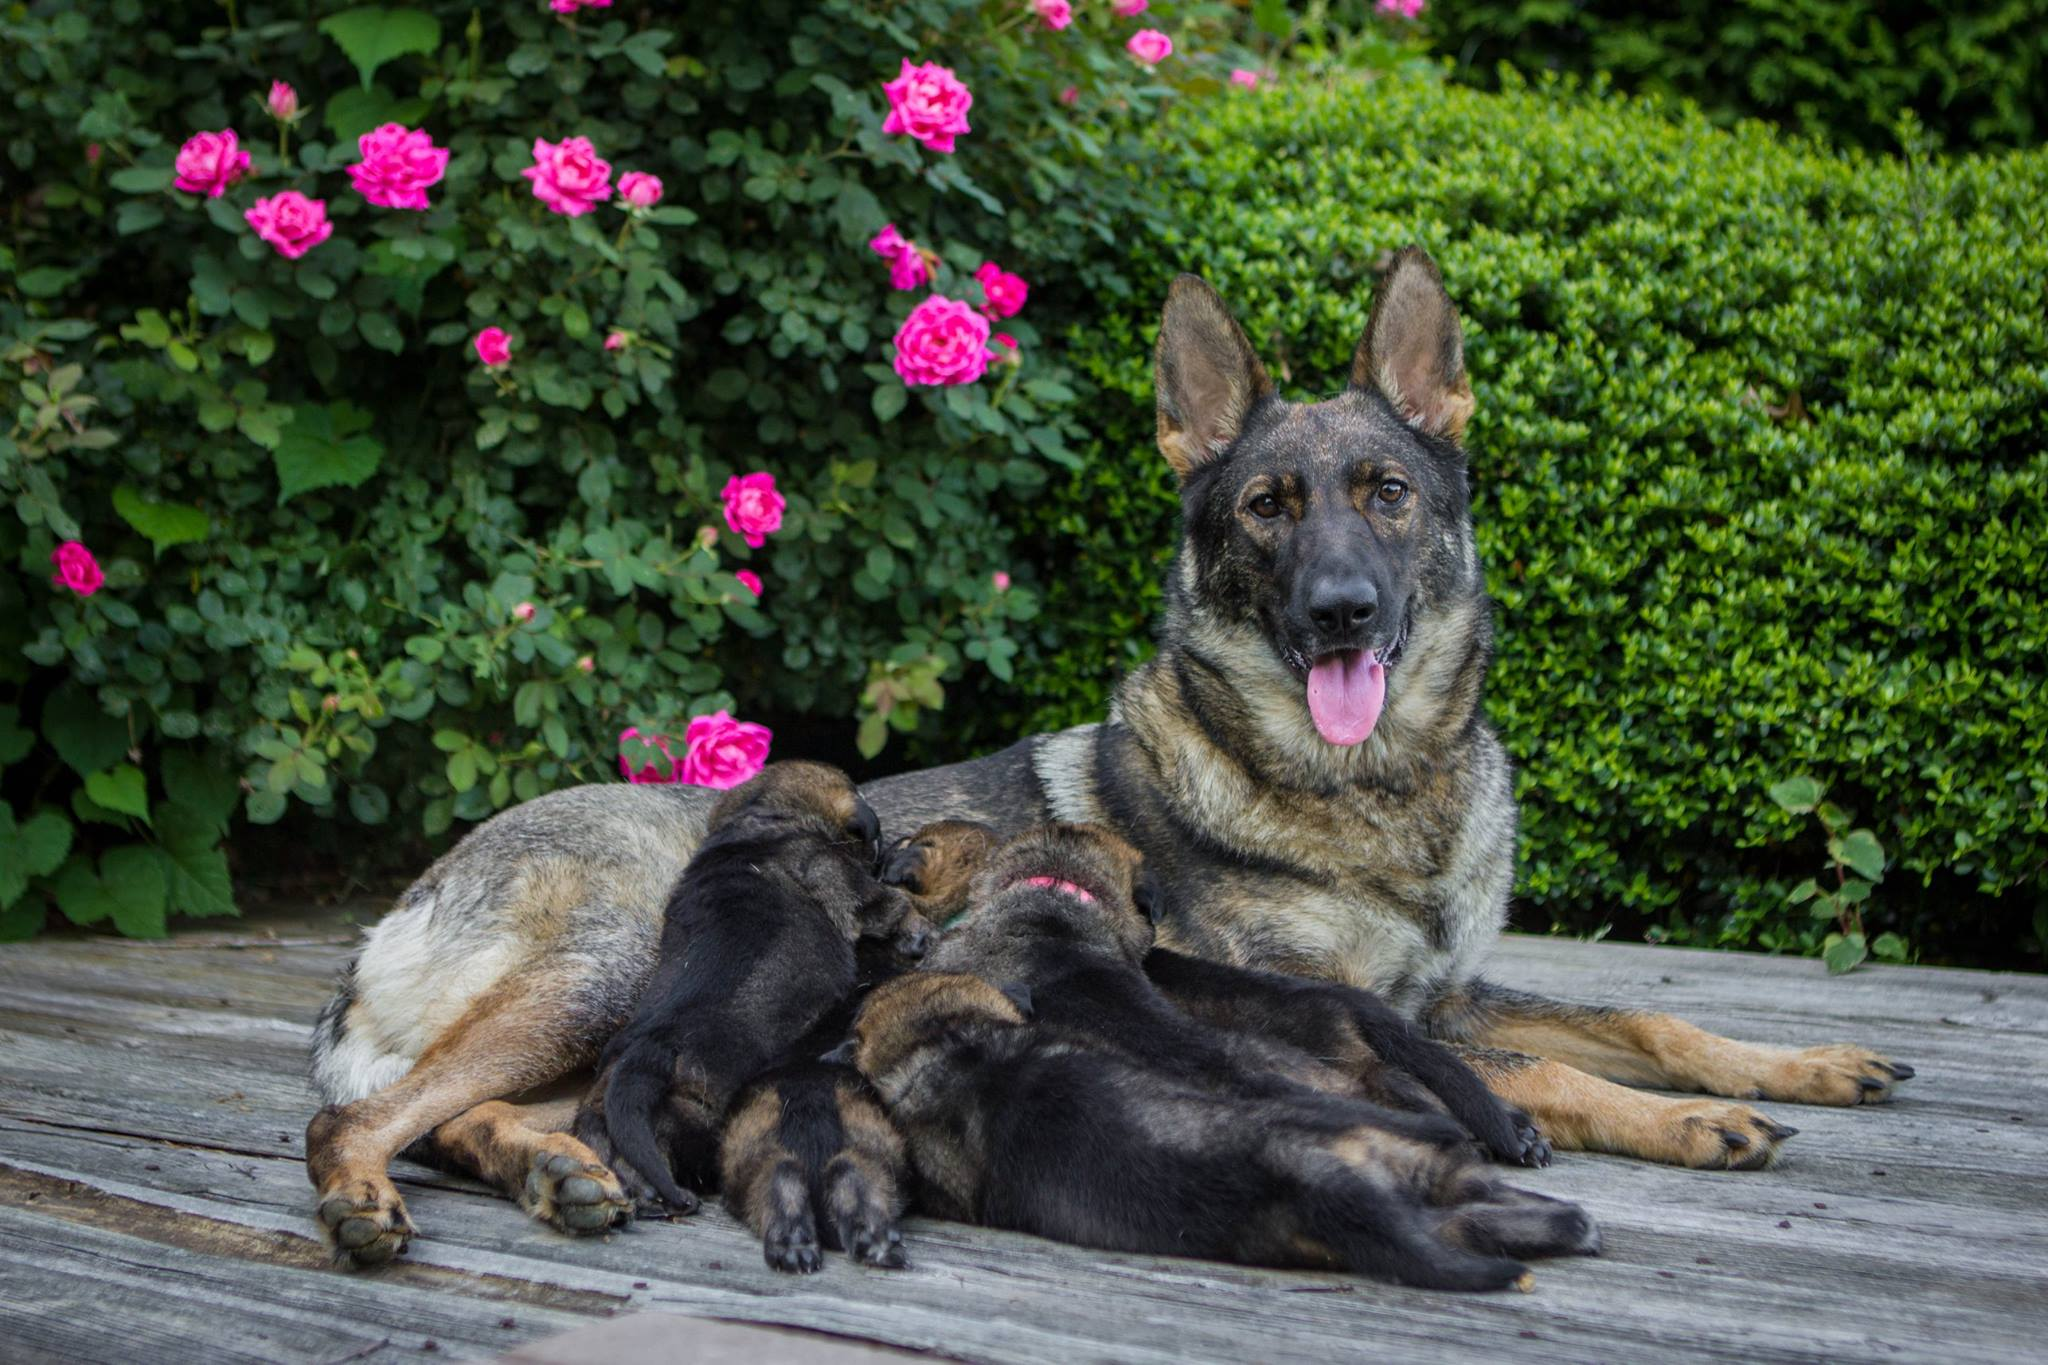 Karma with her puppies